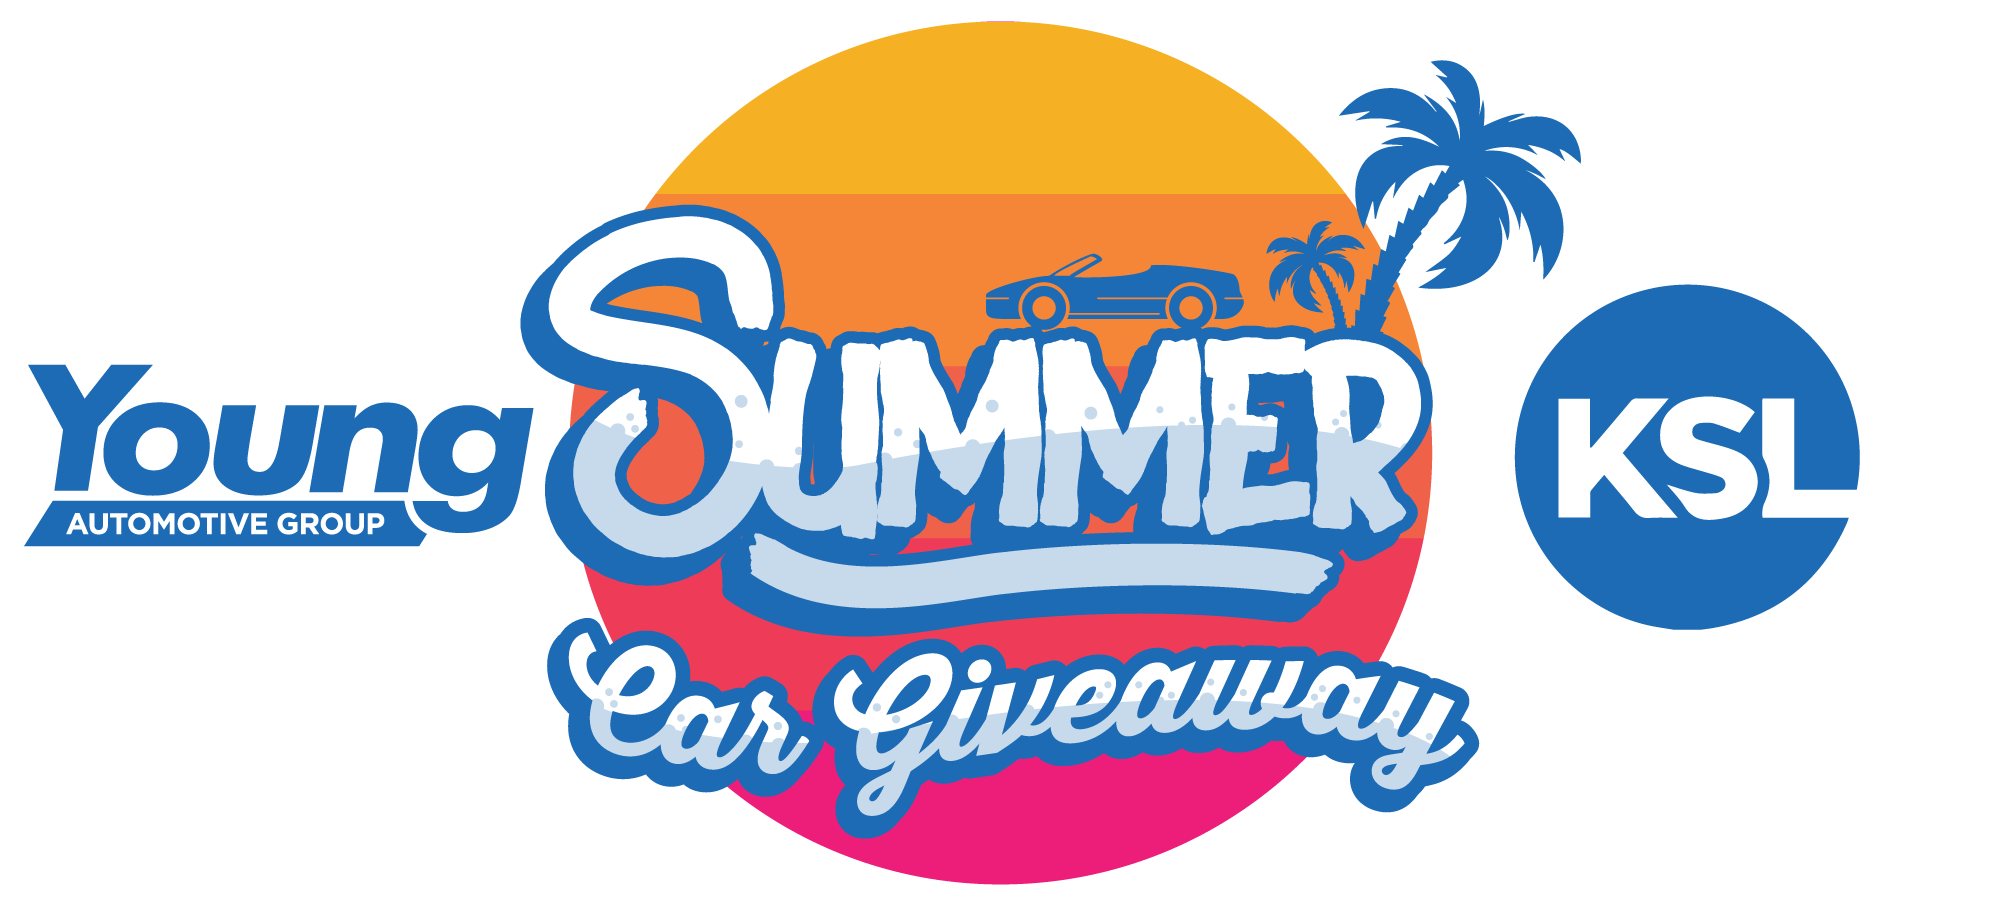 Thank You For Participating In The Young Automotive Group And KSL Summer  Car Giveaway! The Contest Has Ended, And Finalists Have Been Selected.